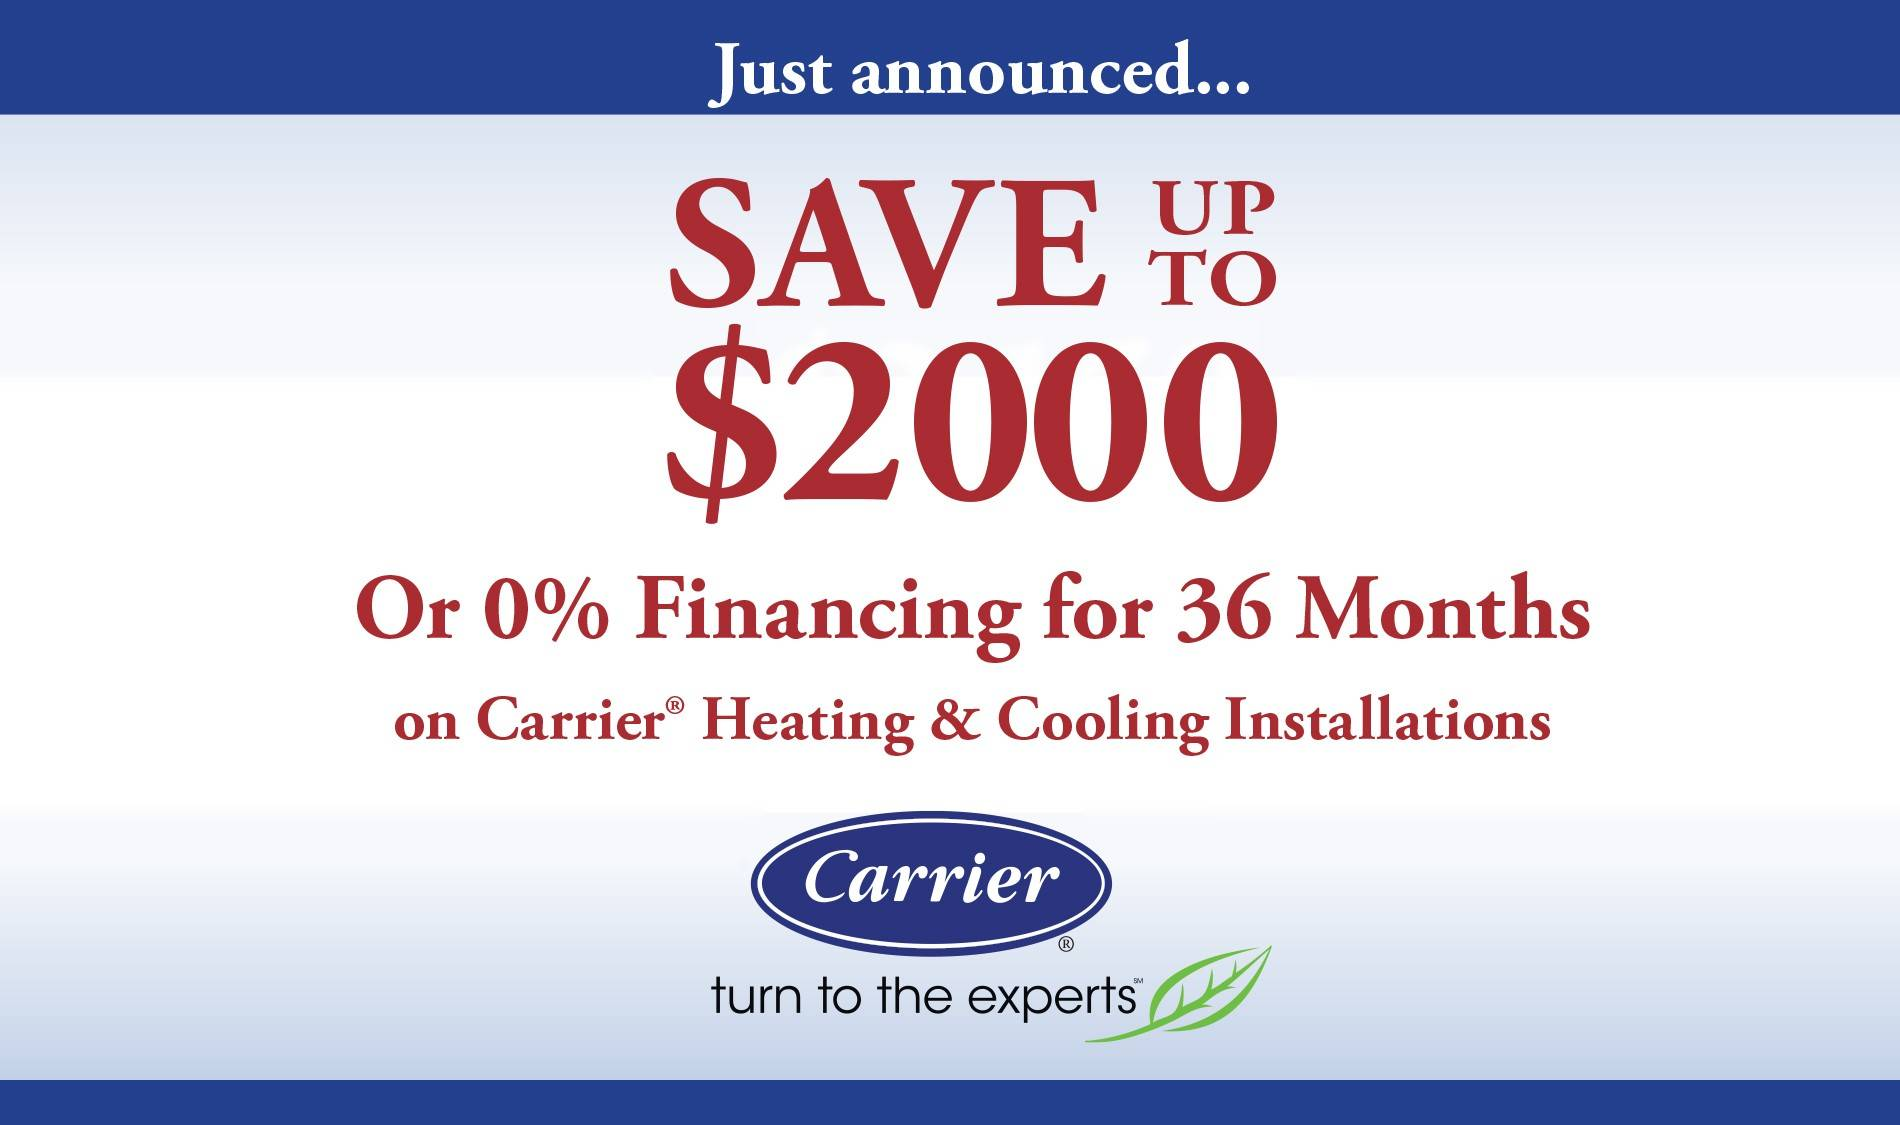 save up to $2000